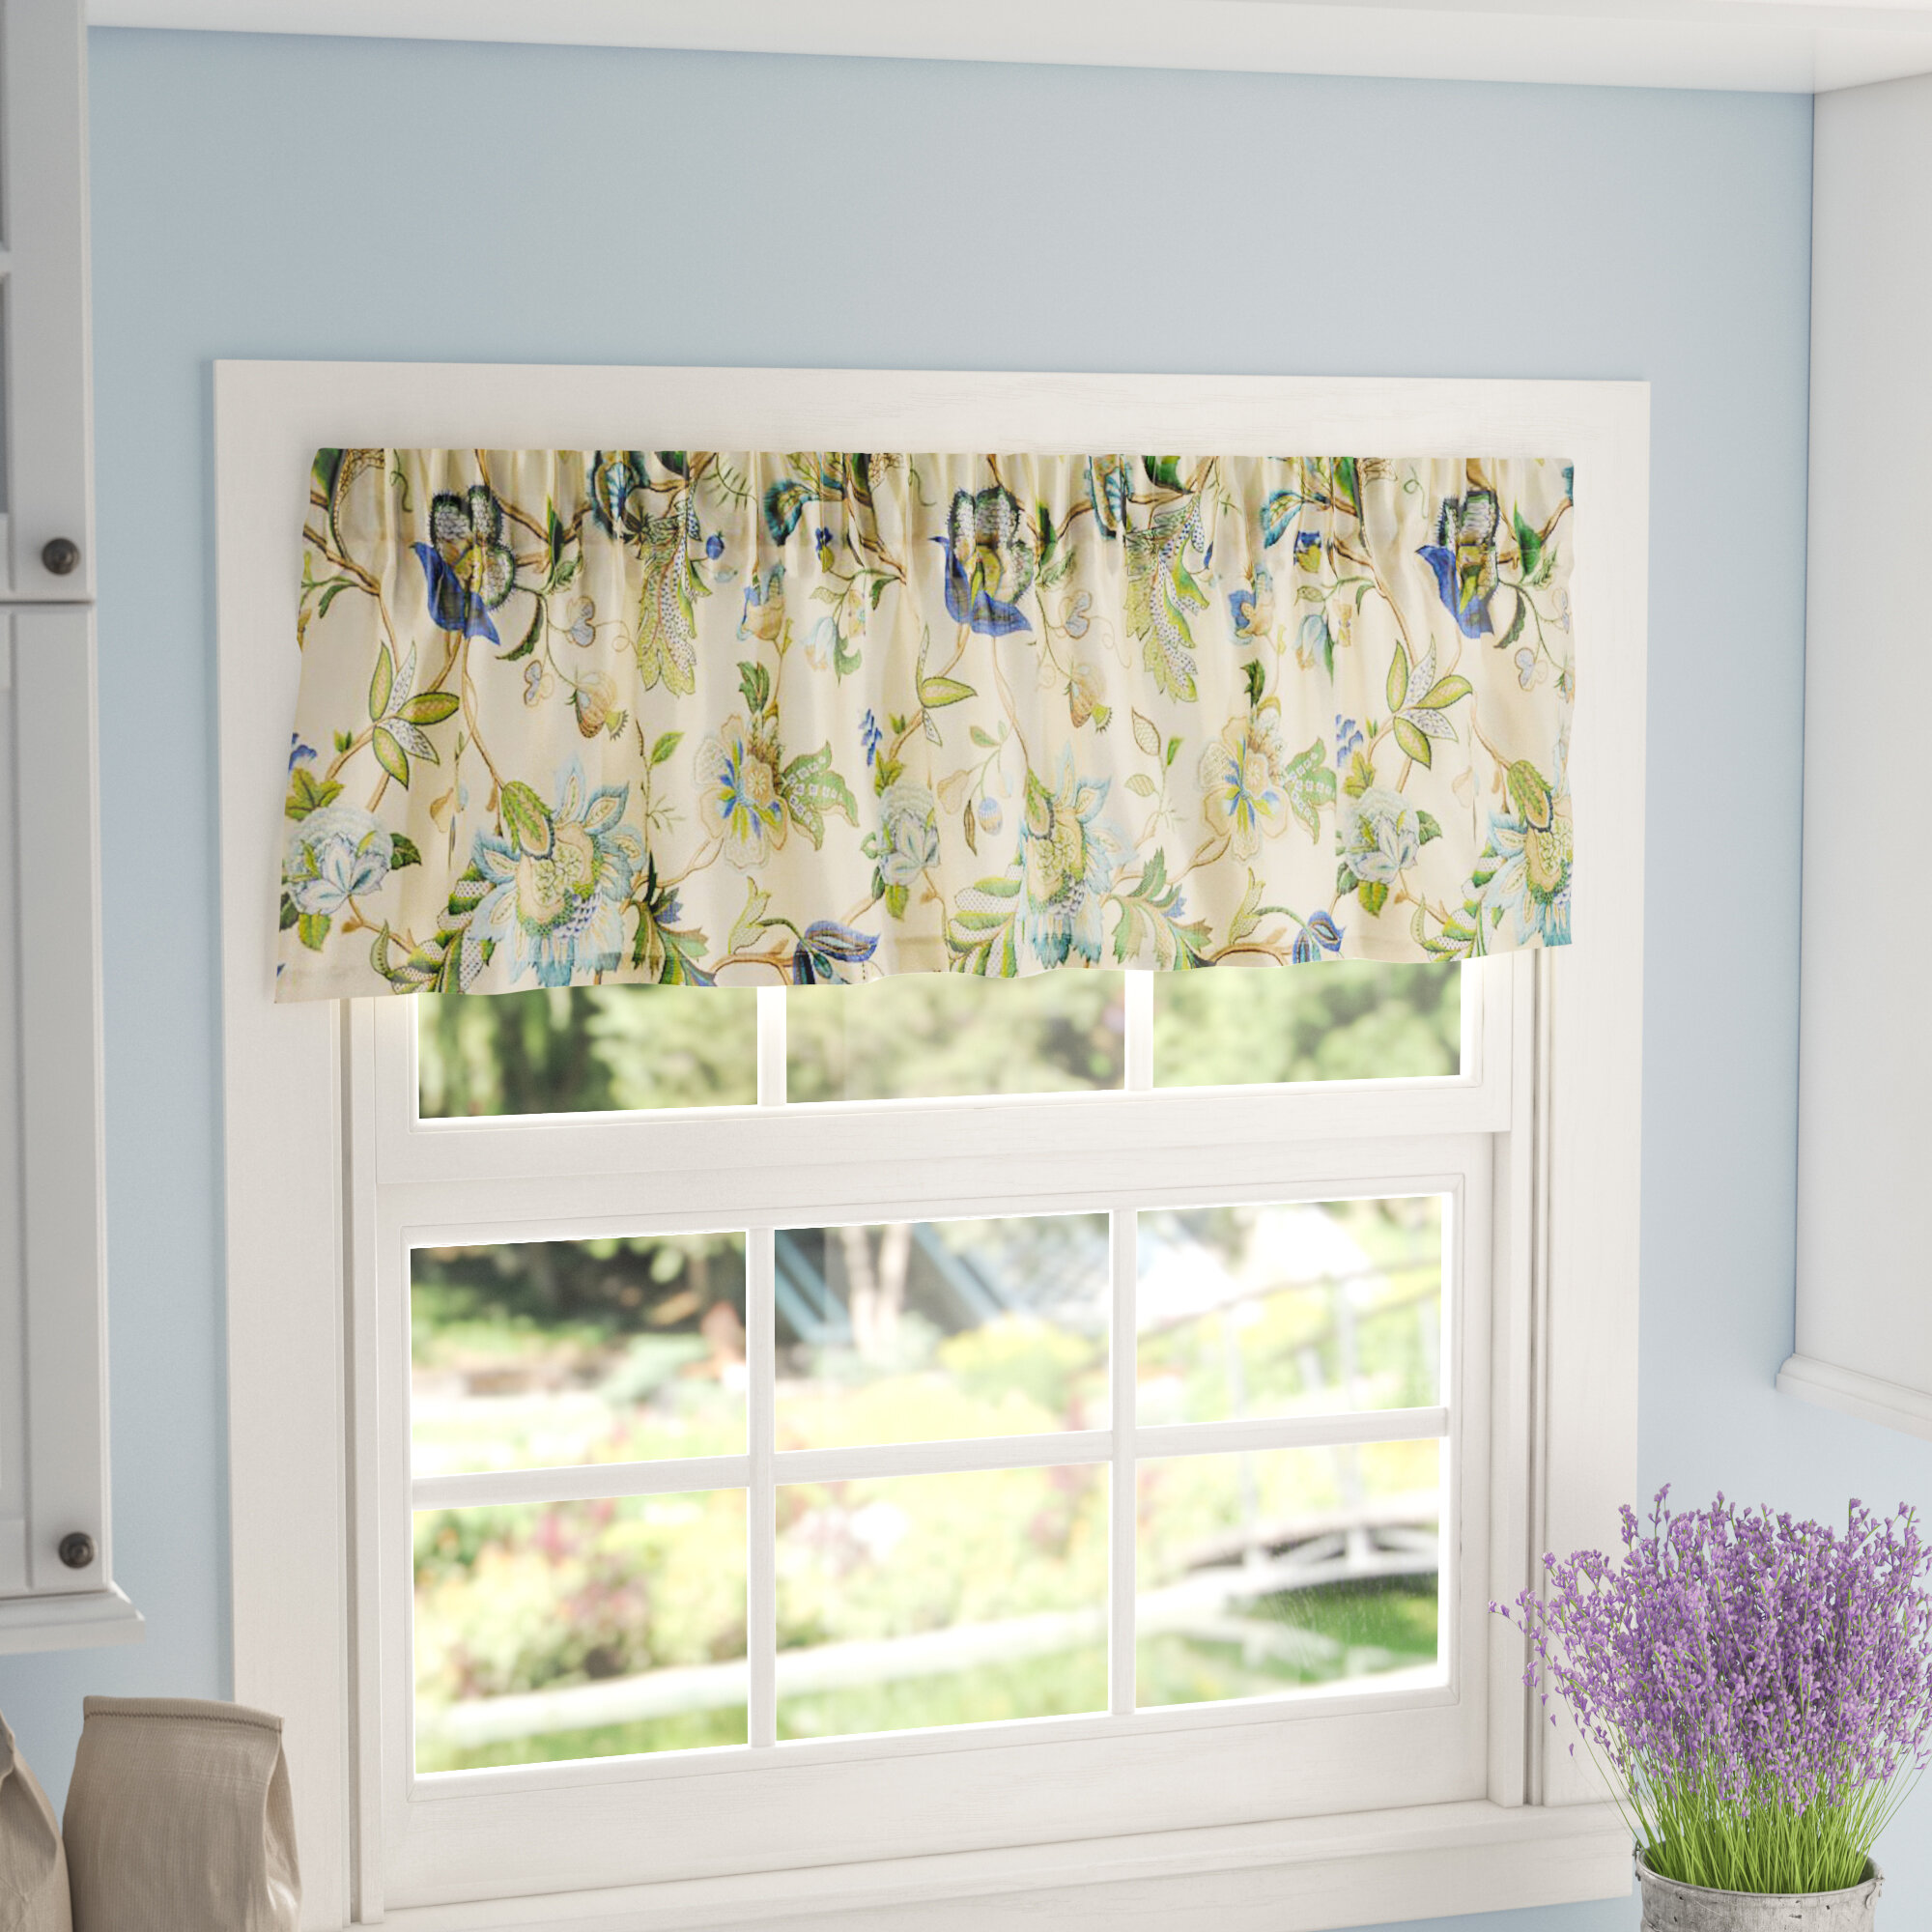 purple rod eyelet door valance fabric blockout pocket drape with design itm drapes sheer curtain